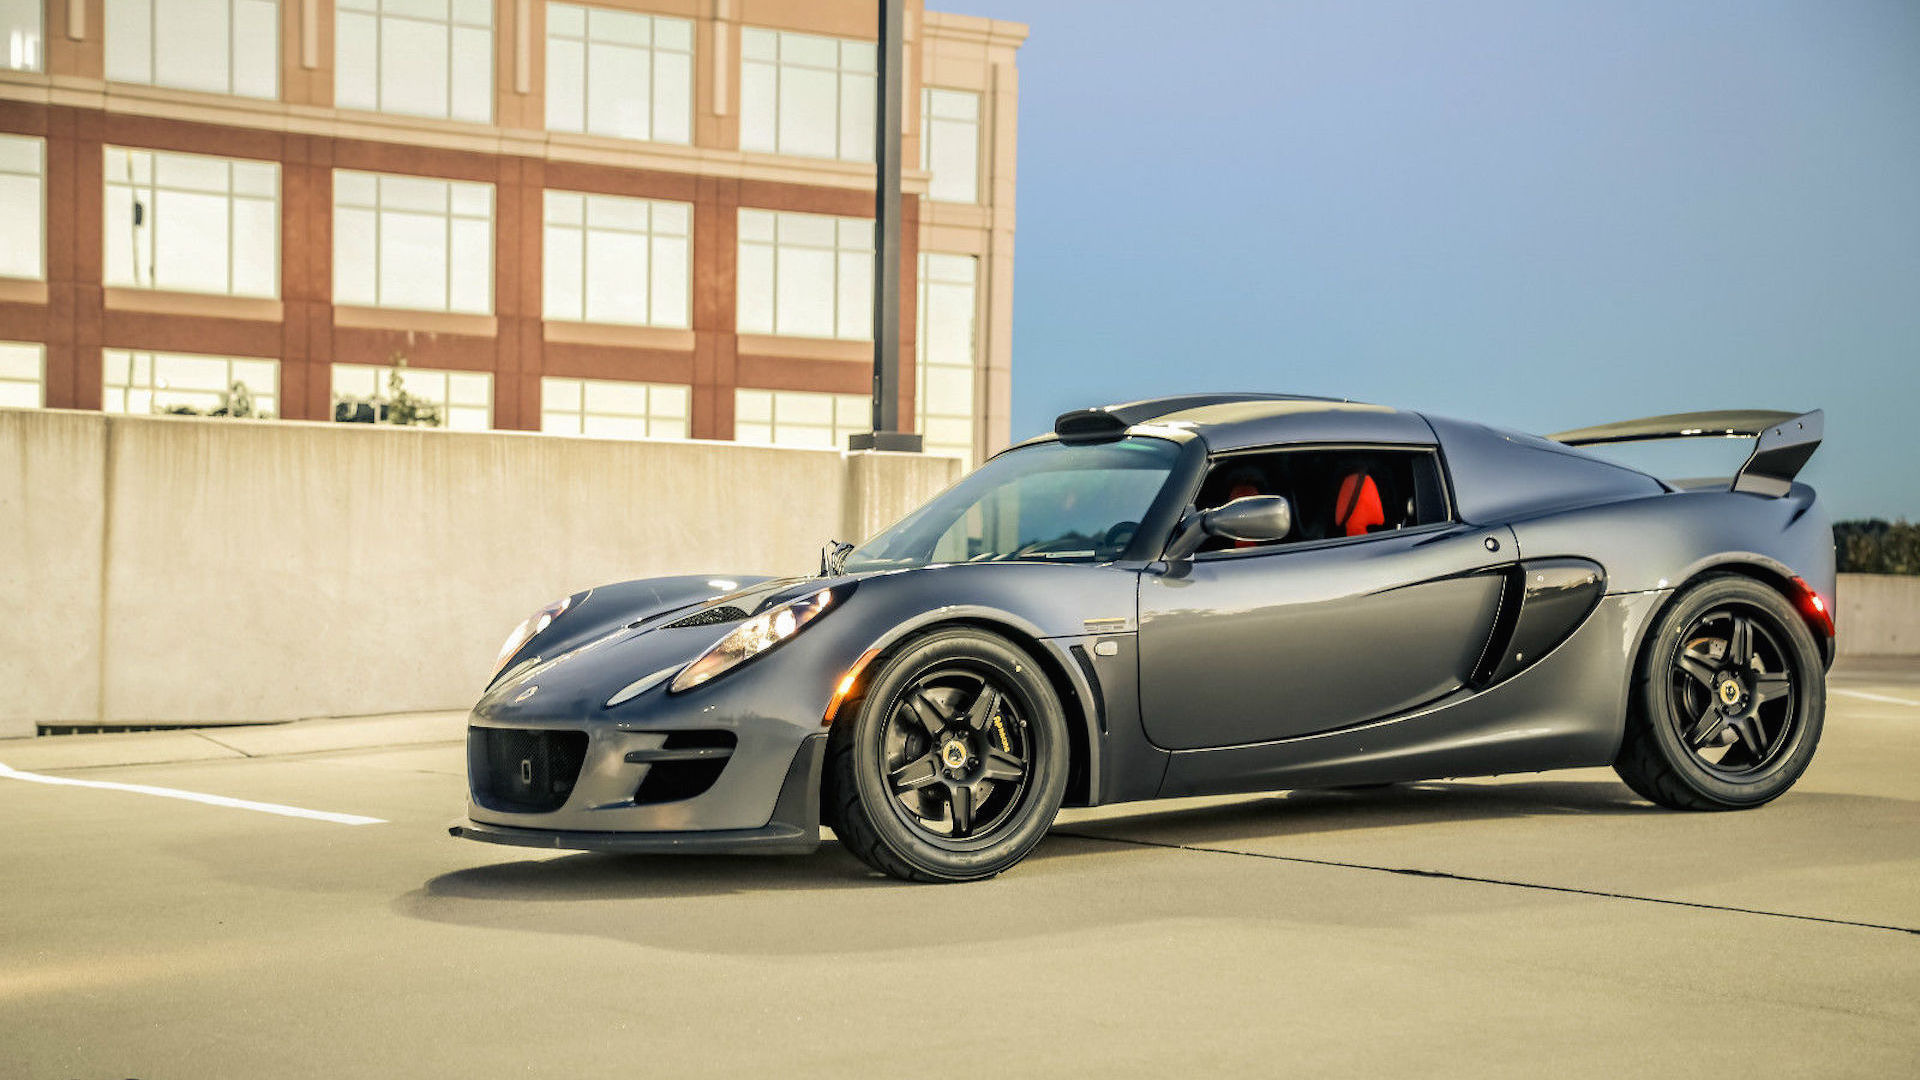 lotus exige s 260 ebay find is one of three in north america. Black Bedroom Furniture Sets. Home Design Ideas